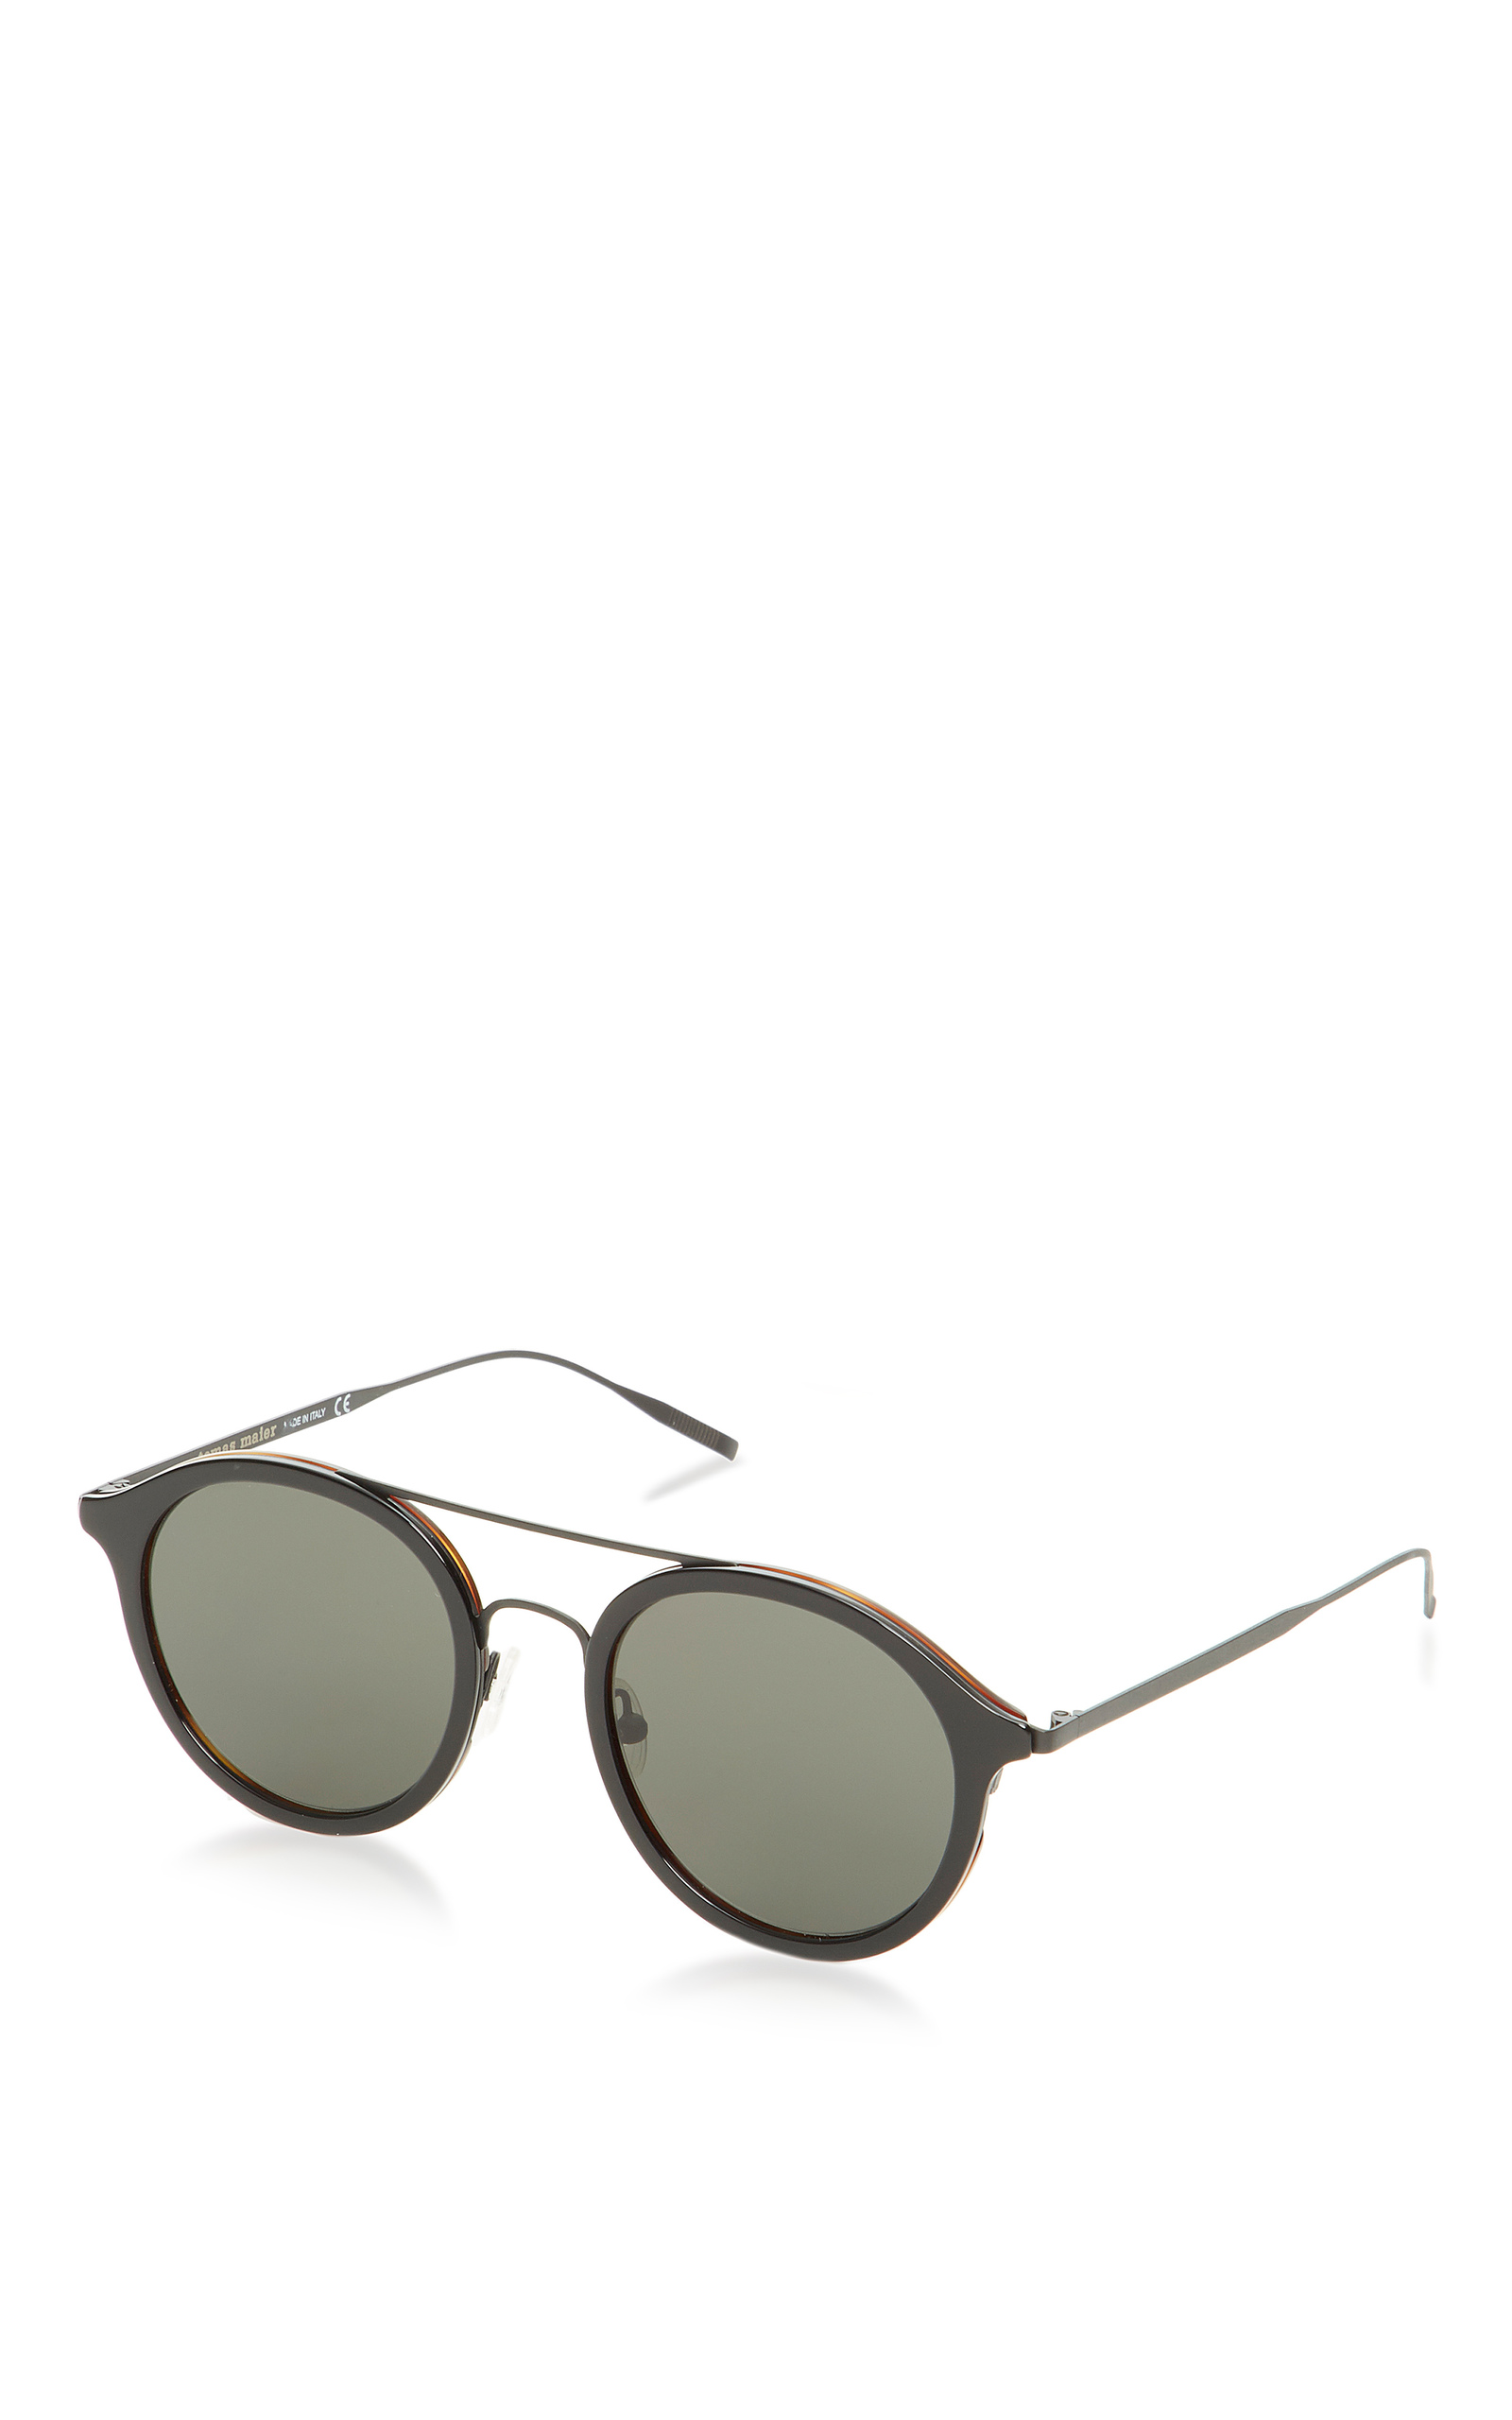 Large Thin Frame Glasses Matte Black : Round Sunglasses with Matte Frame by Tomas Maier Moda ...